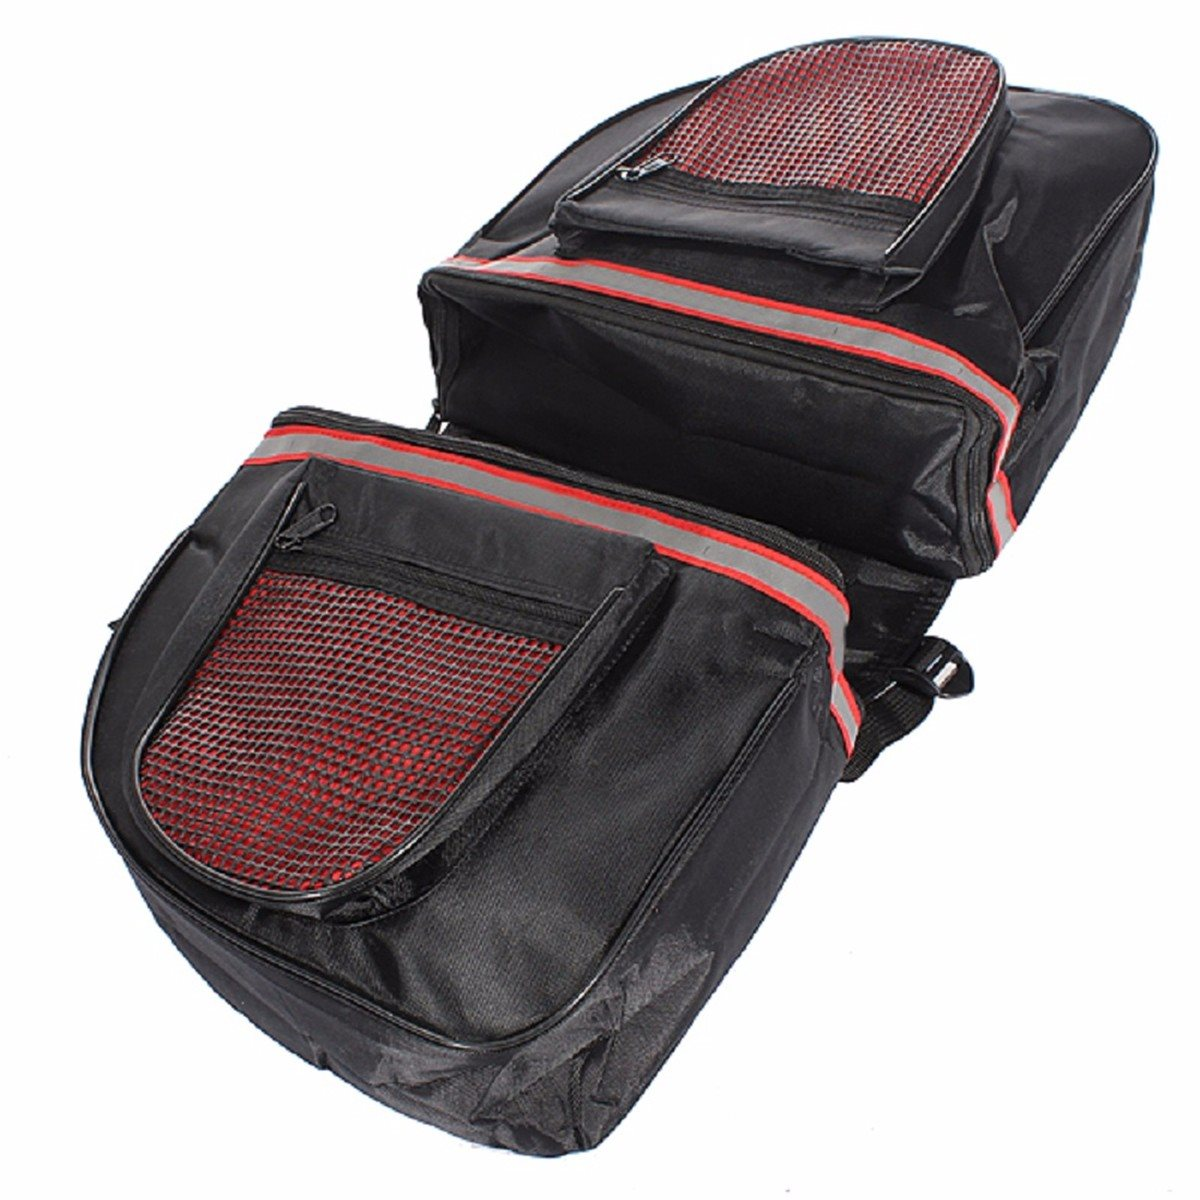 600D Polyster MTB Cycling Bicycle Bag Rear Seat Bag Waterproof Bike Bag Backseat Pannier Double Zipper Side Bag Each outdoor bicycle bag bike double side rear bag